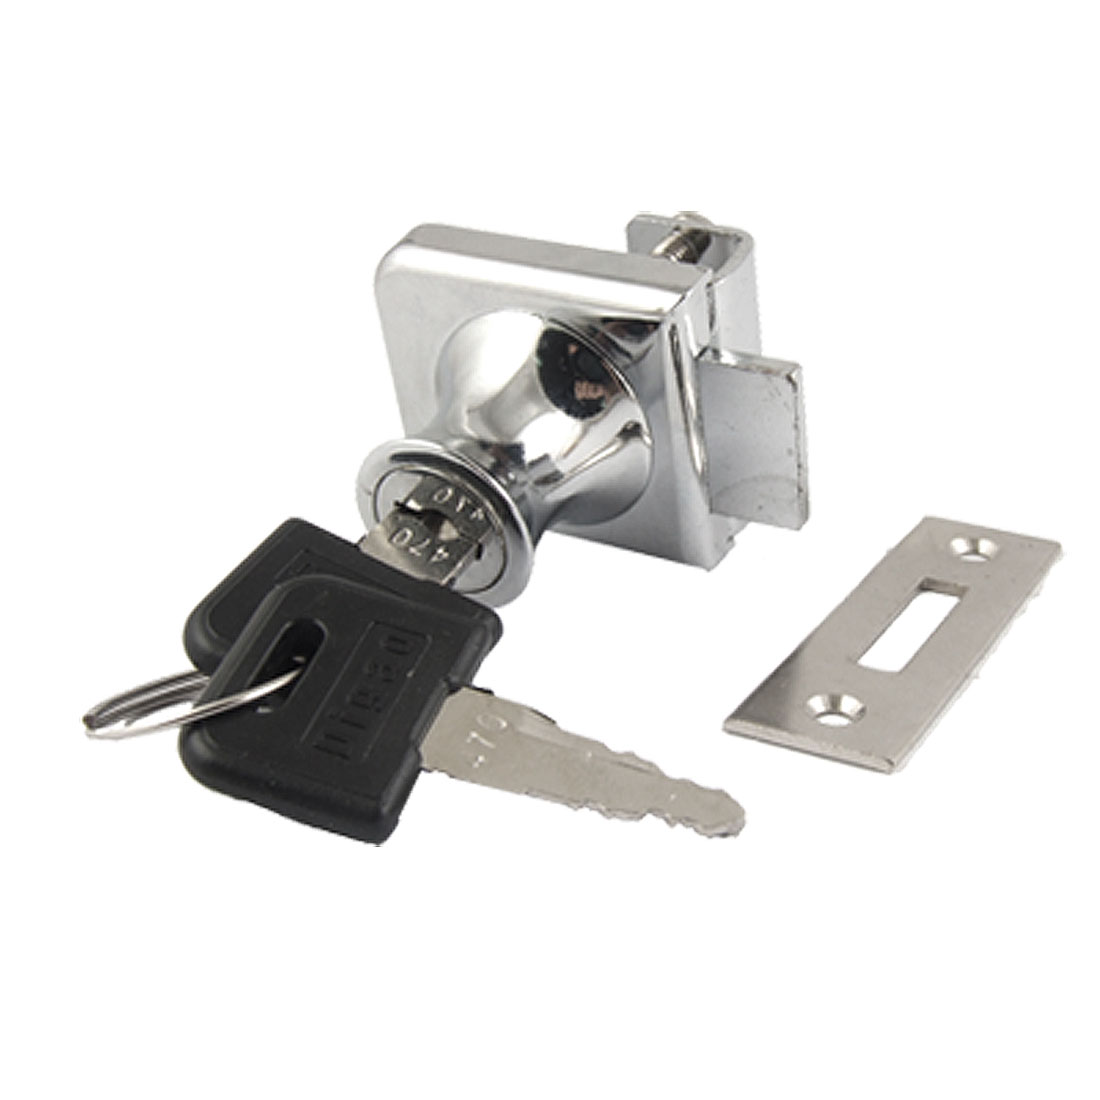 Single Door Cylinder Rim Security Lock w keys for Glass Cabinet